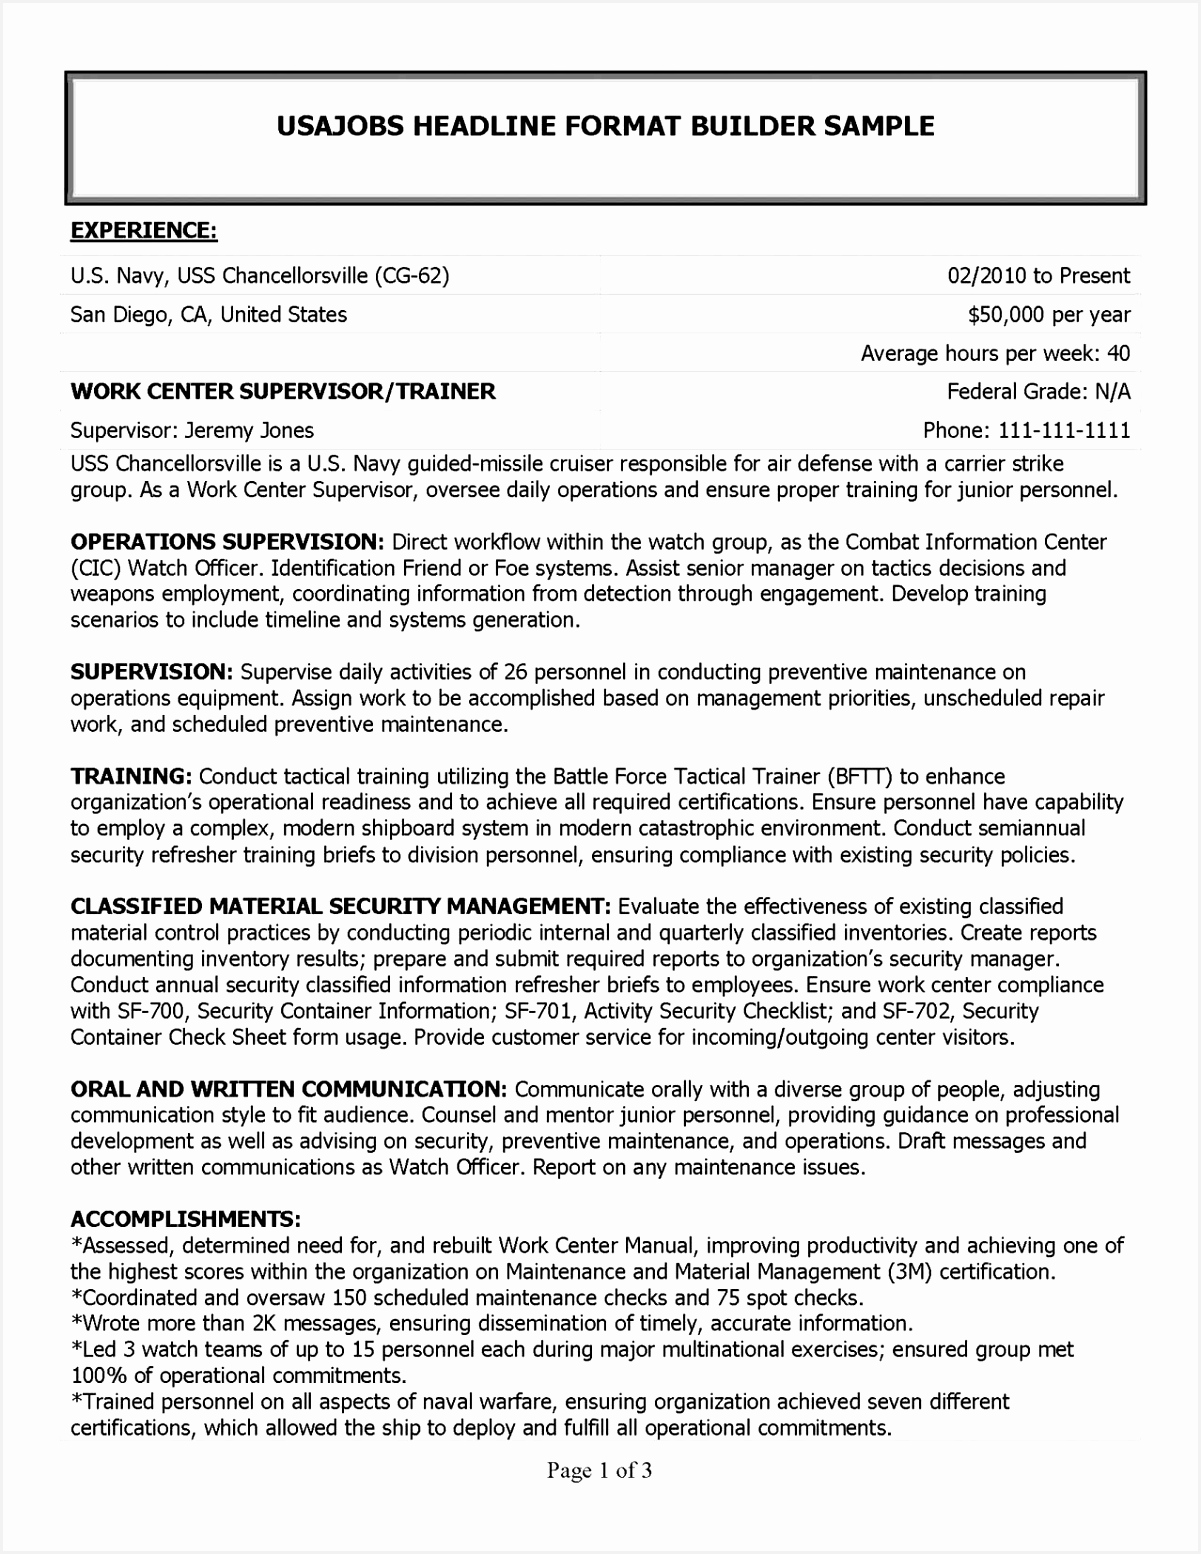 Examples Resumes for Jobs Avdlc Luxury Supply Chain Resume Examples Staggering Example Job Resume Awesome Of Examples Resumes for Jobs A0k4j Inspirational Example Job Resume Beautiful Luxury Examples Resumes Ecologist